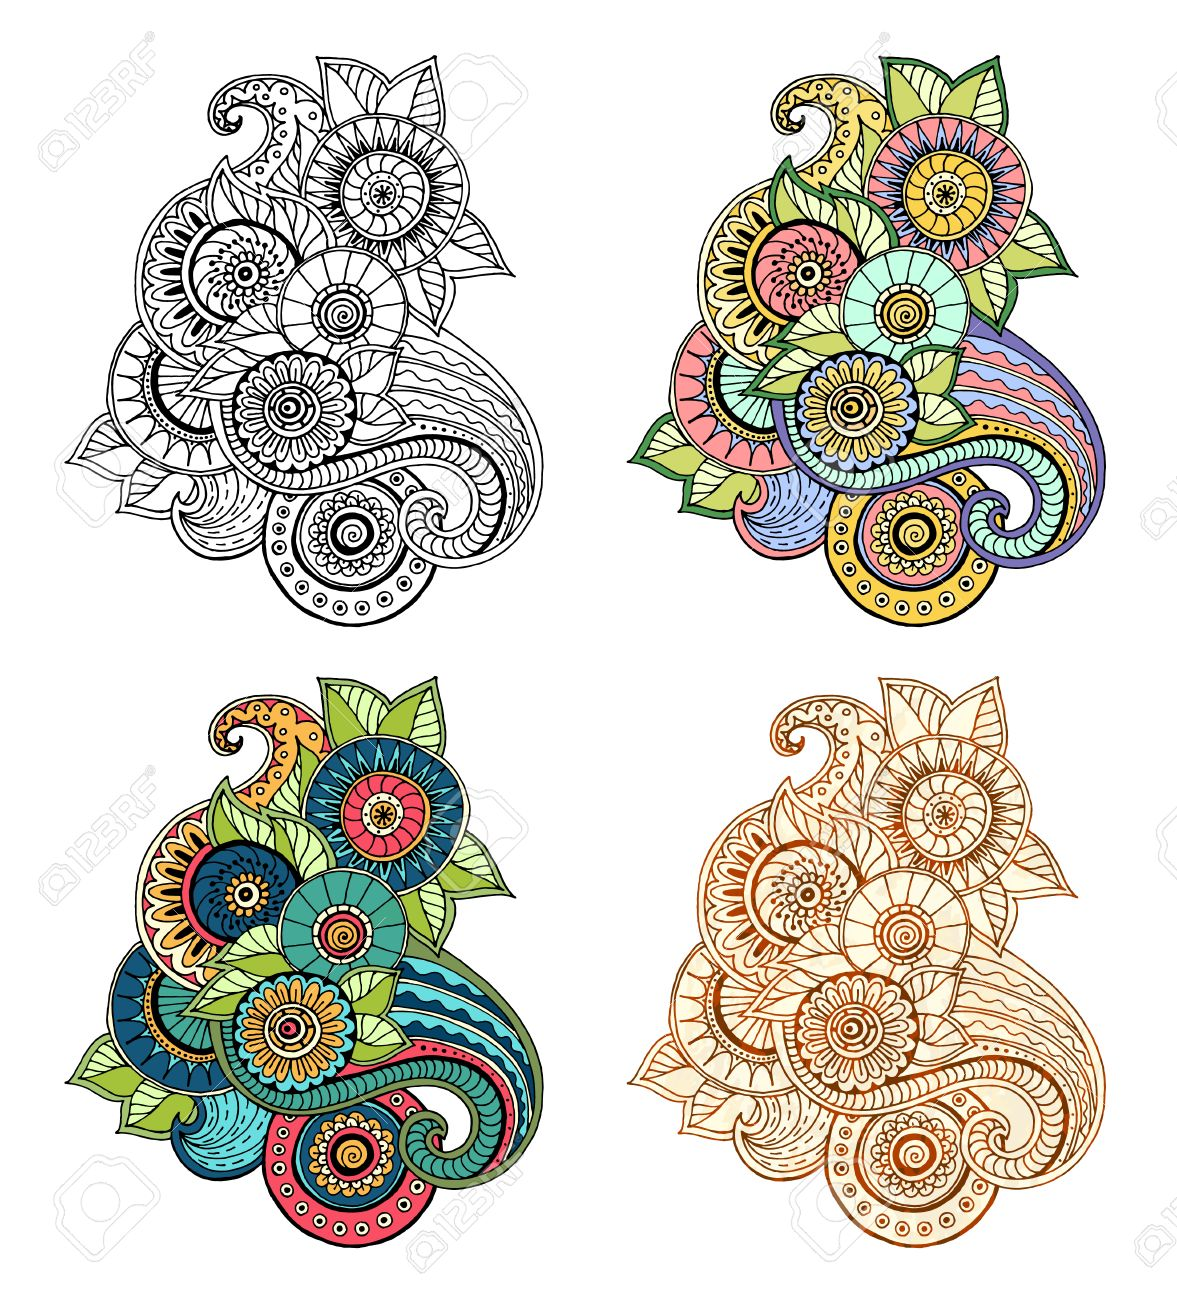 Ethnic floral zentangle, doodle background pattern circle in